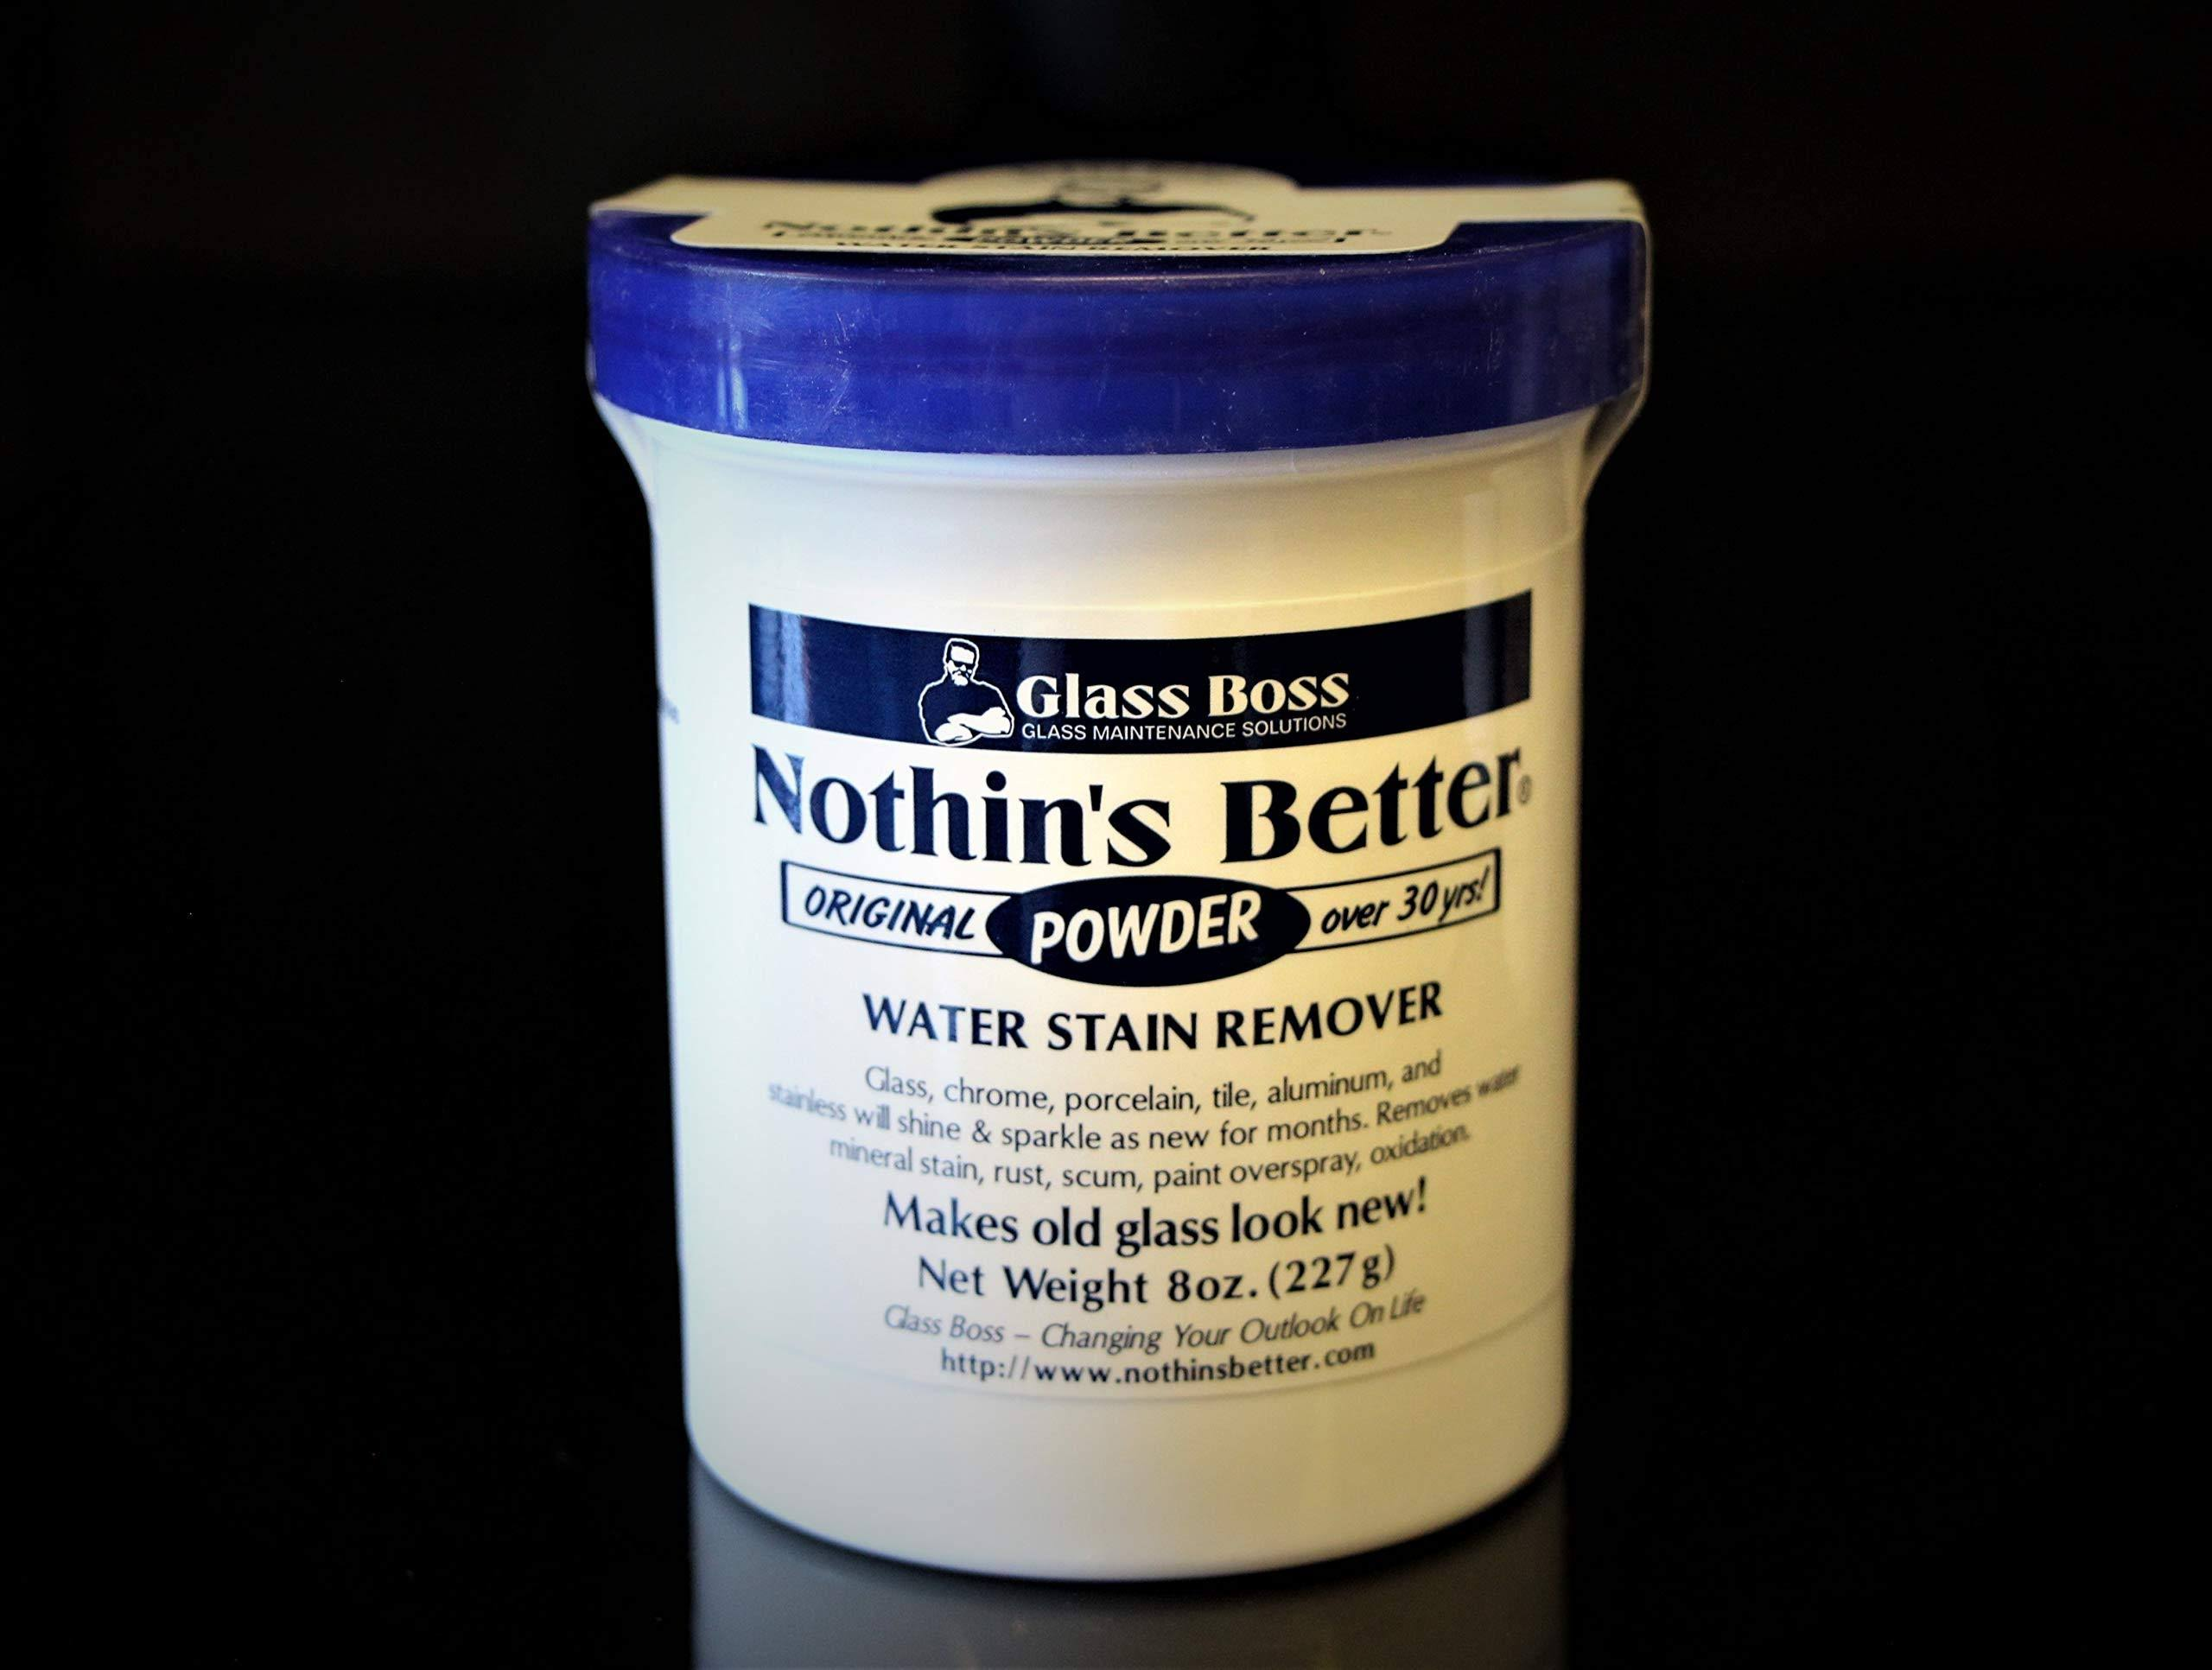 Nothins Better Water Stain Remover Powder